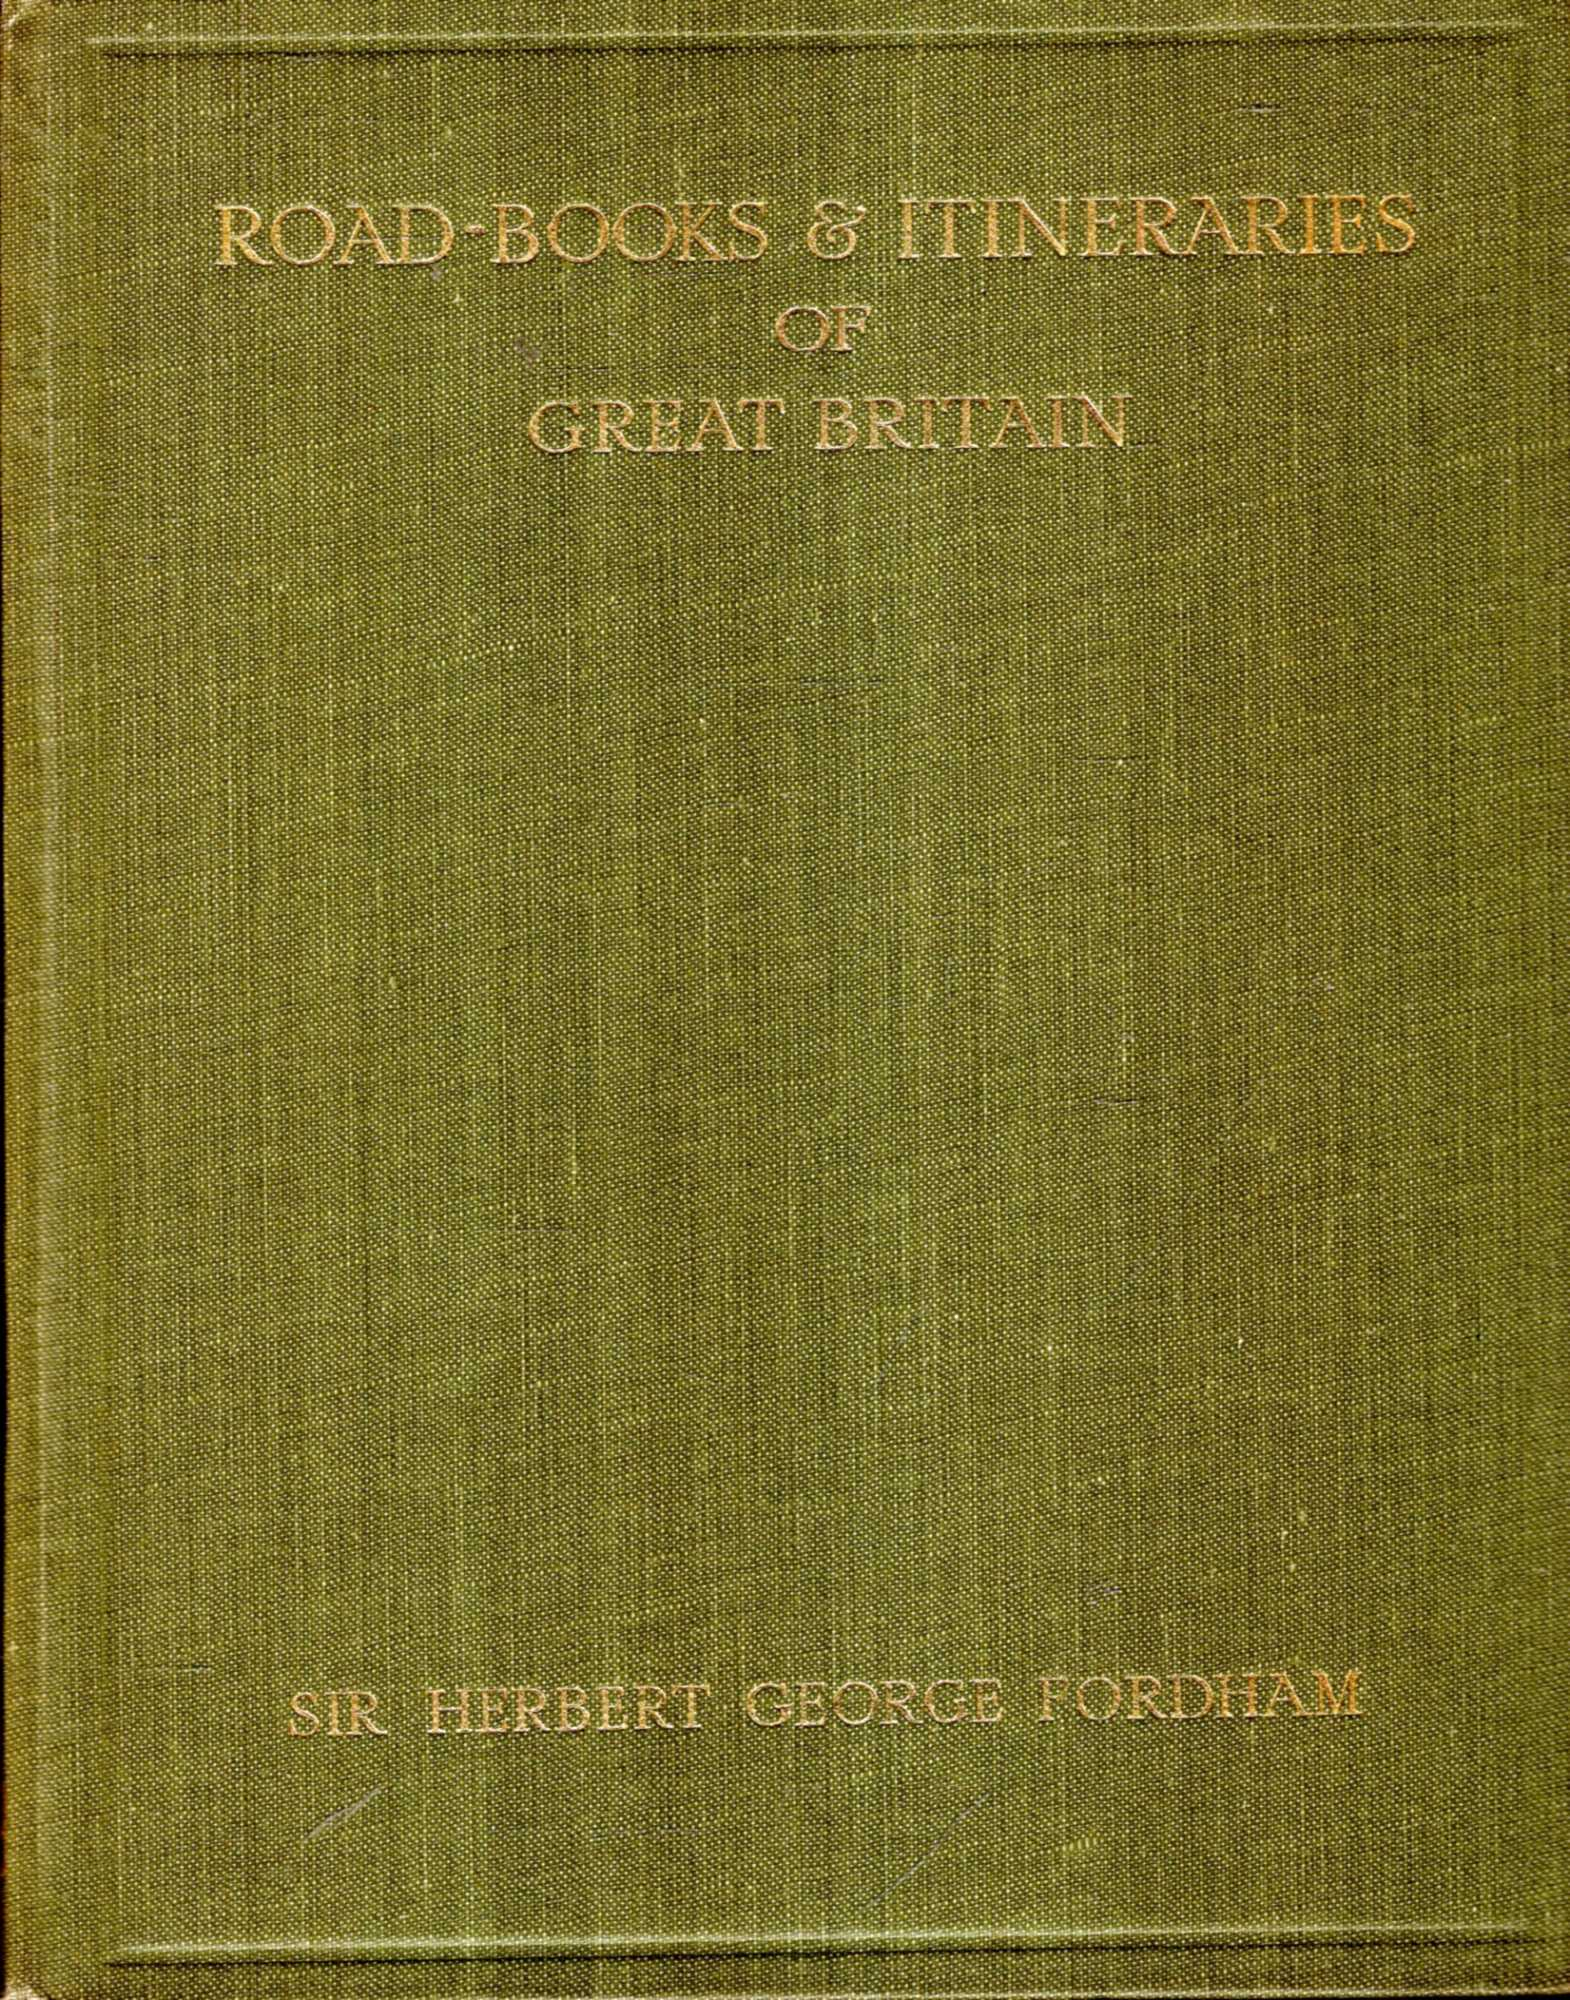 Image for The Road-Books & Itineraries of Great Britain 1570 to 1850 : A Catalogue with An Introduction and Bibliography